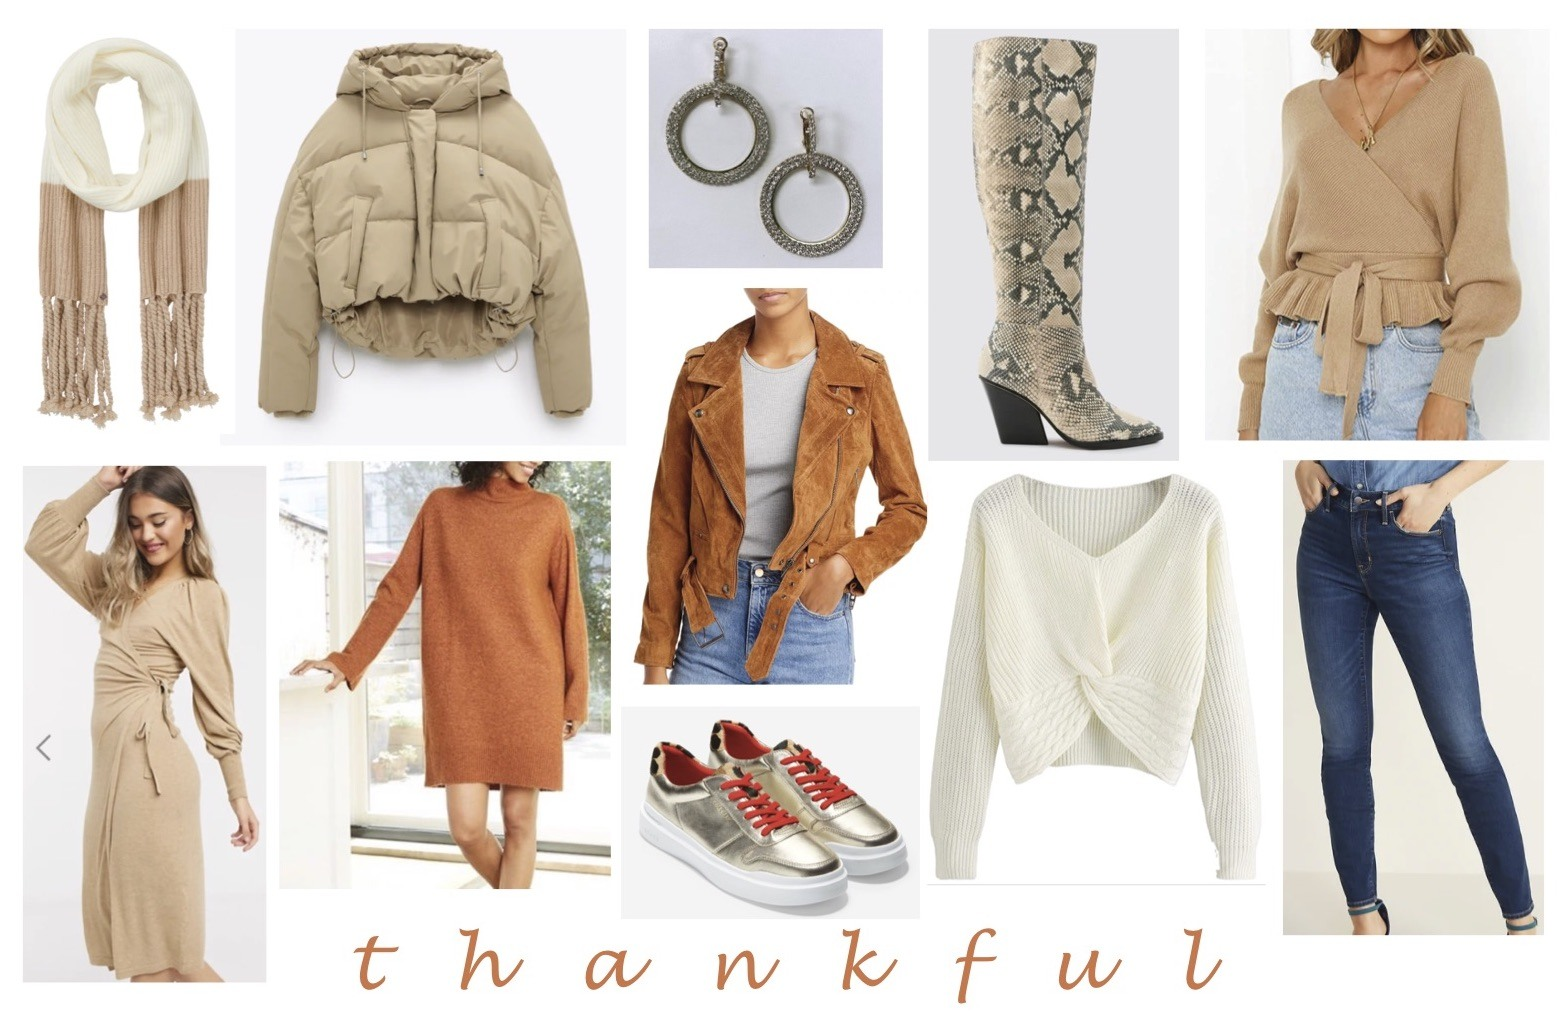 Give Thanks To Fashion